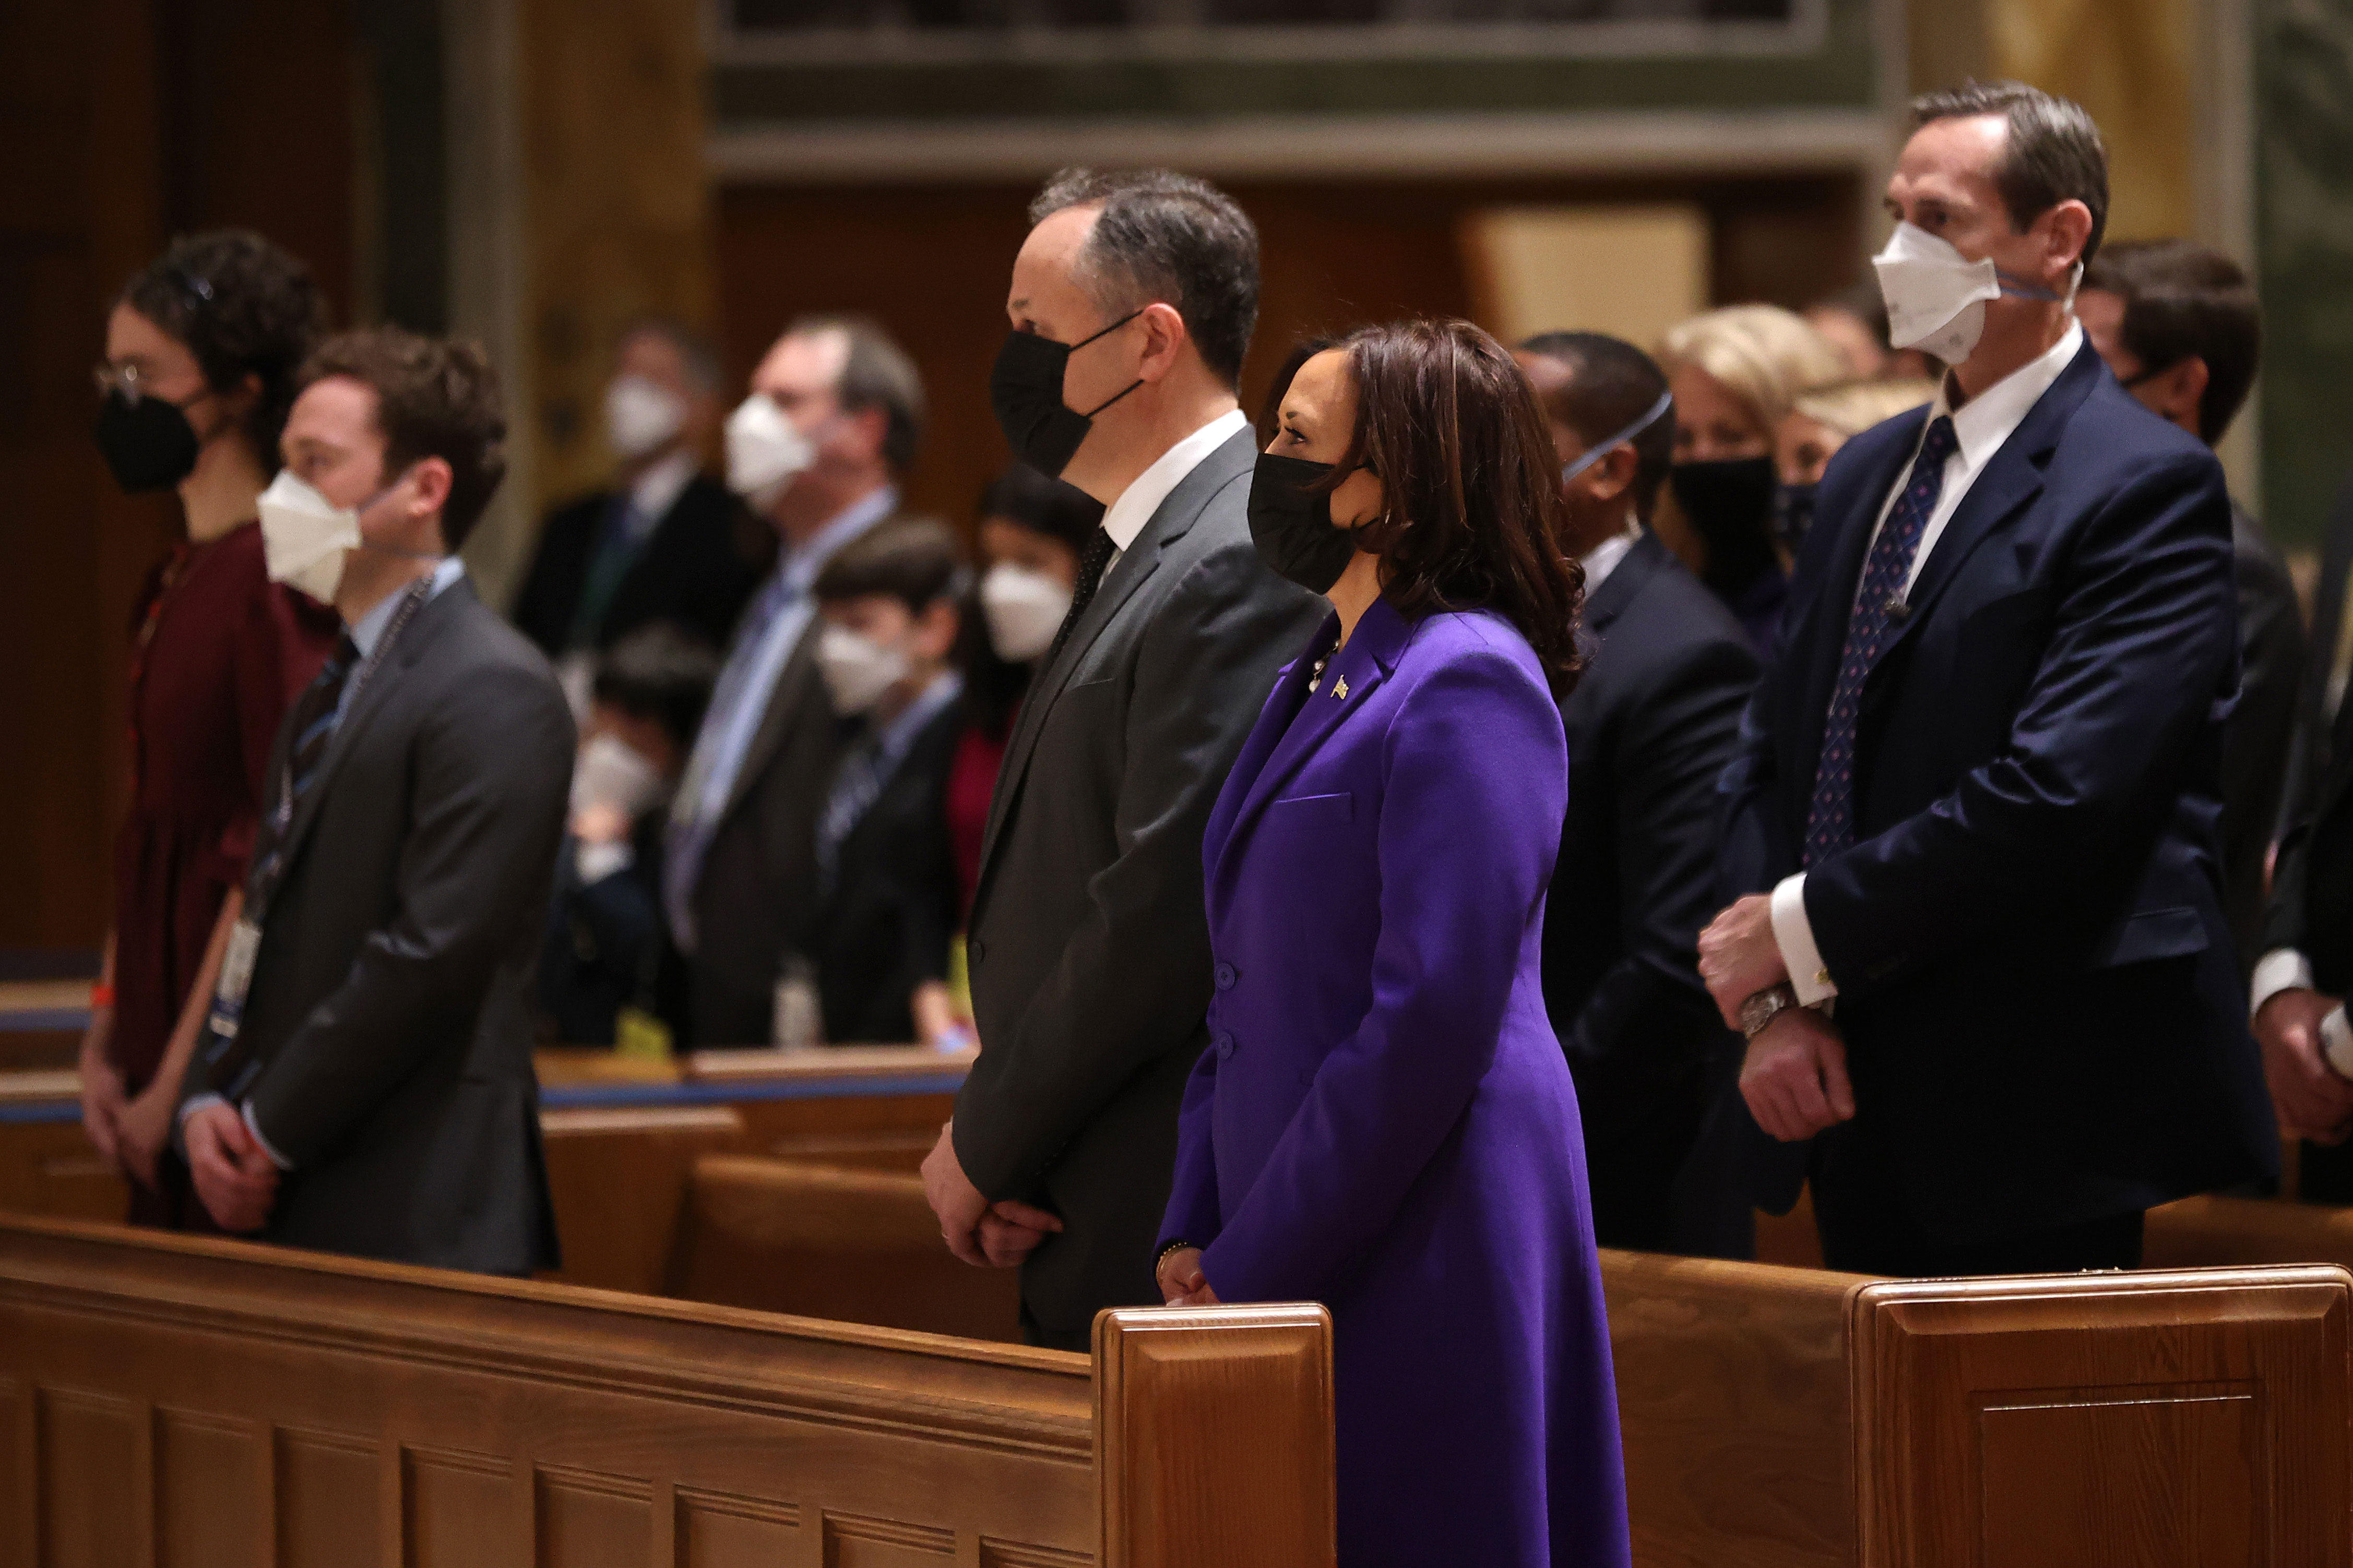 Vice President-elect Kamala Harris and her husband Doug Emhoff attend mass at the Cathedral of St. Matthew the Apostle in Washington, DC, with congressional leaders on January 20.